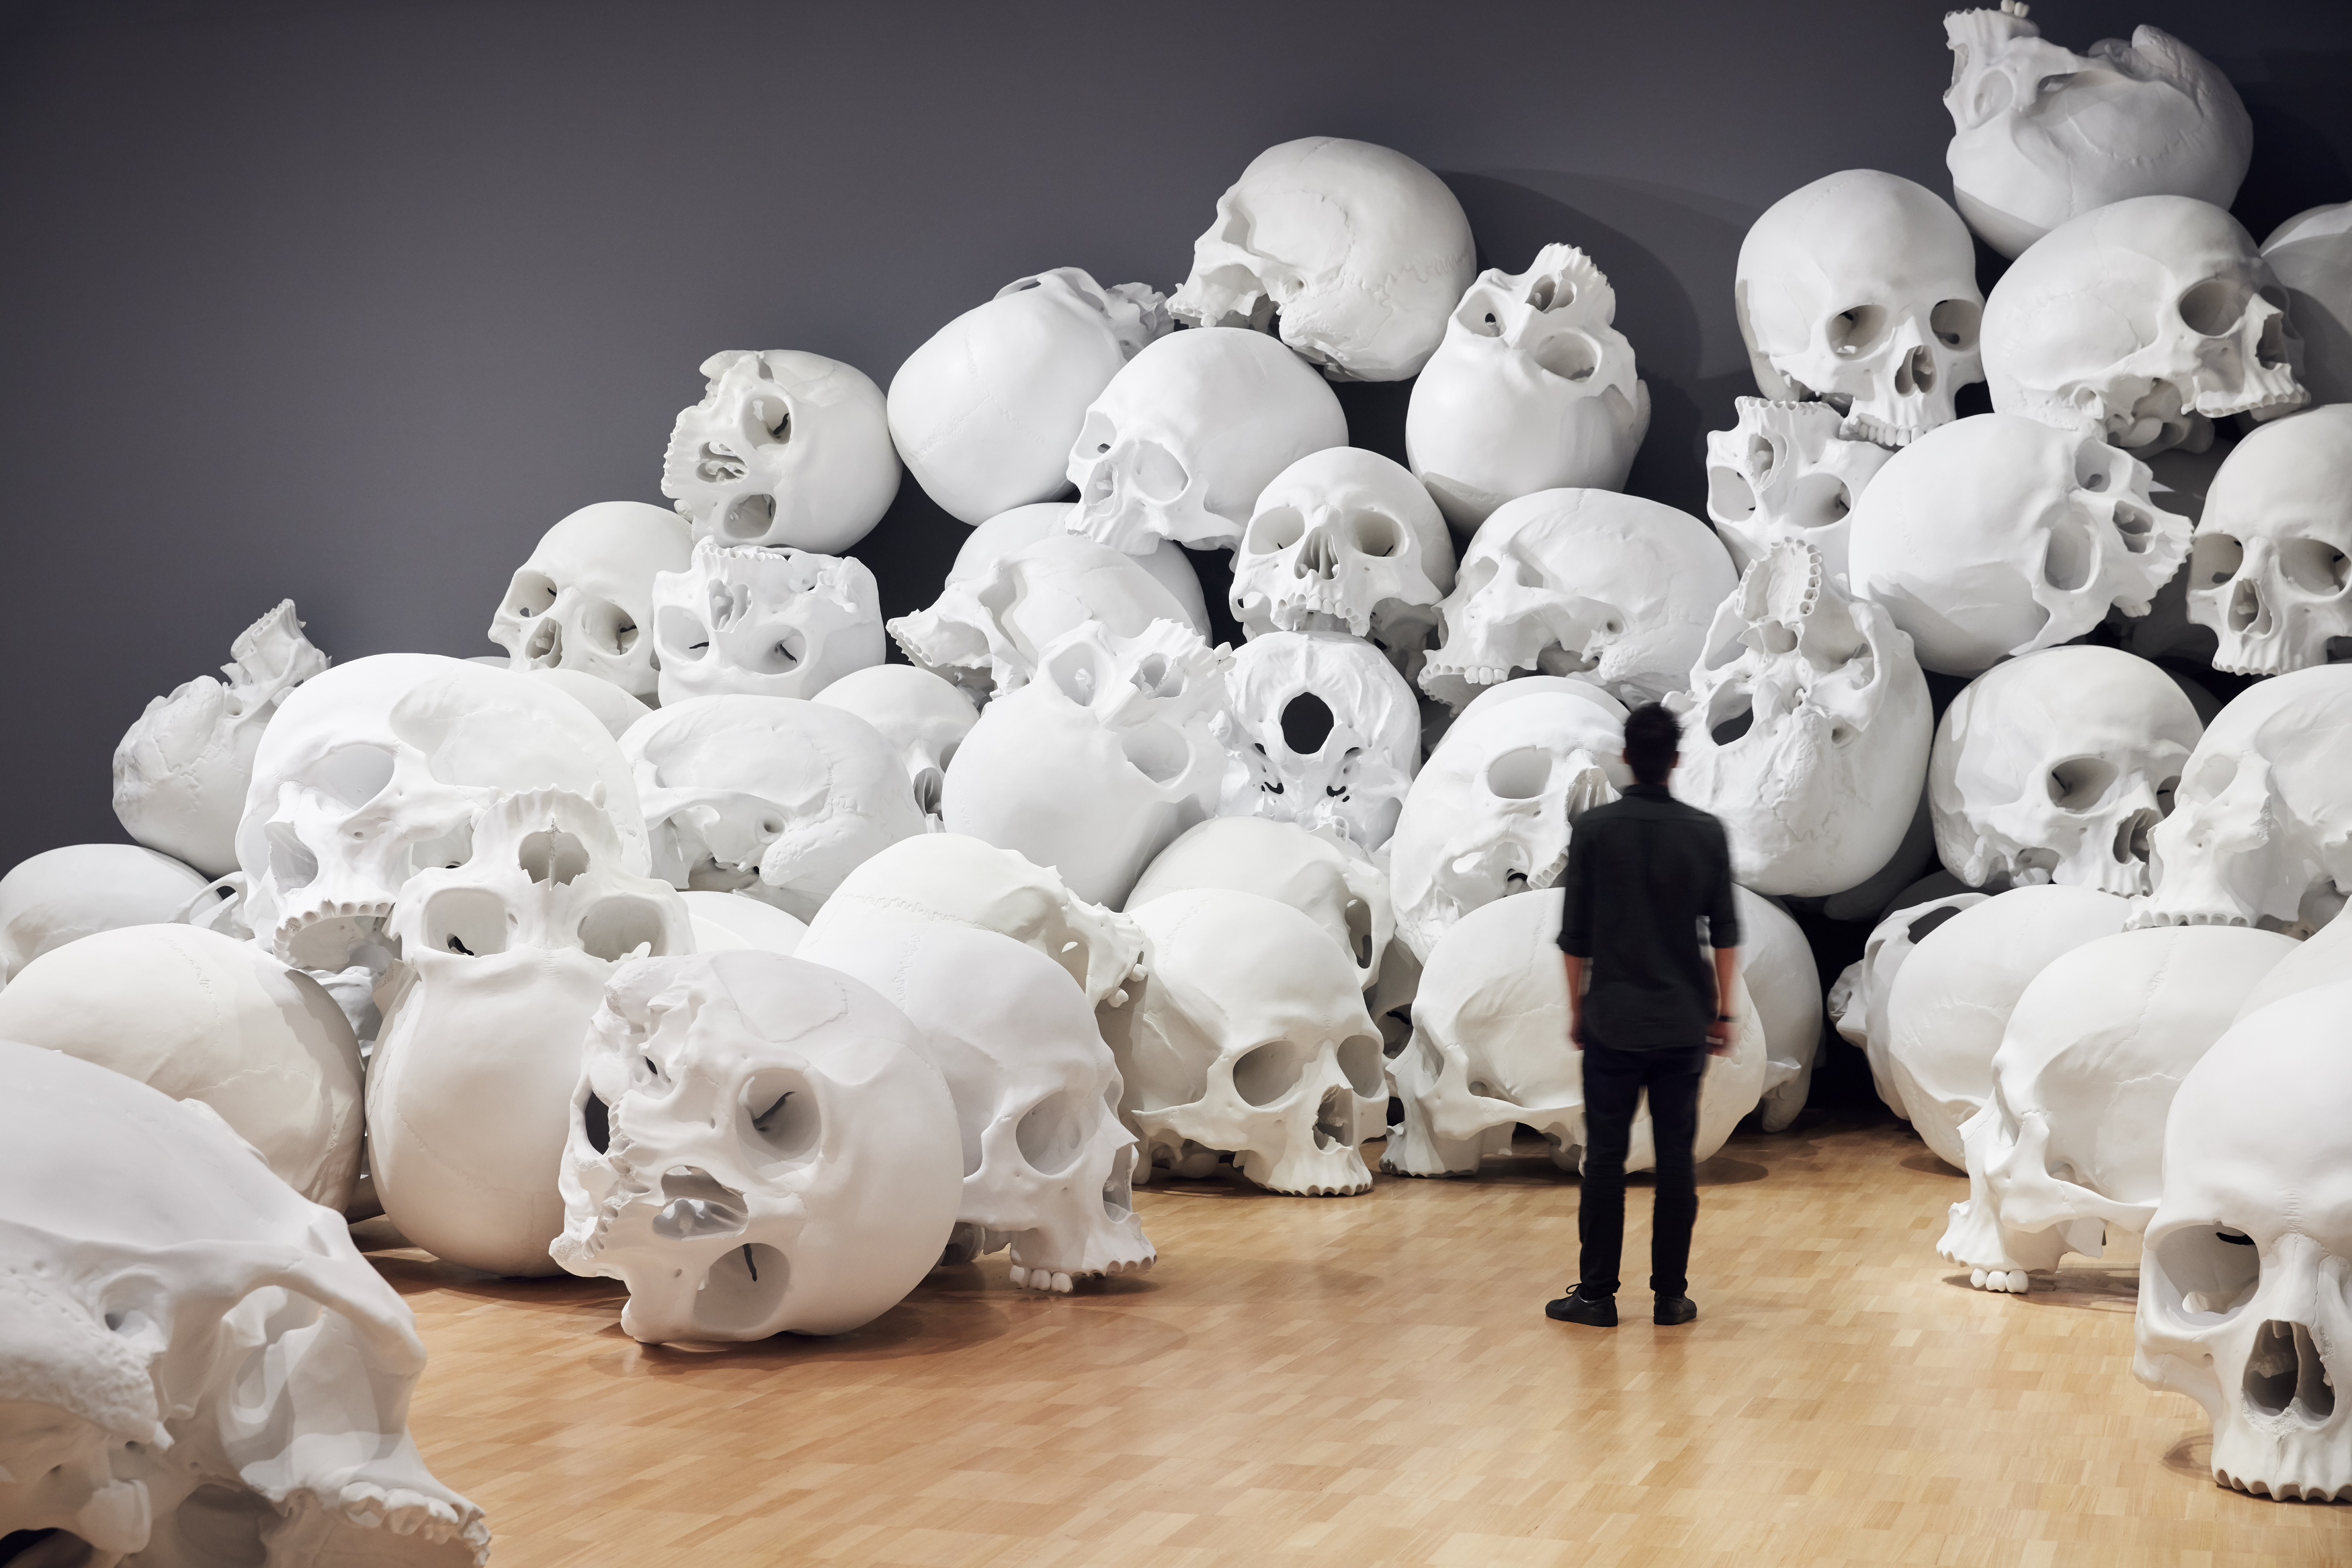 Installation view of Mass by Ron Mueck, 2017 on display at NGV Triennial at NGV International, 2017